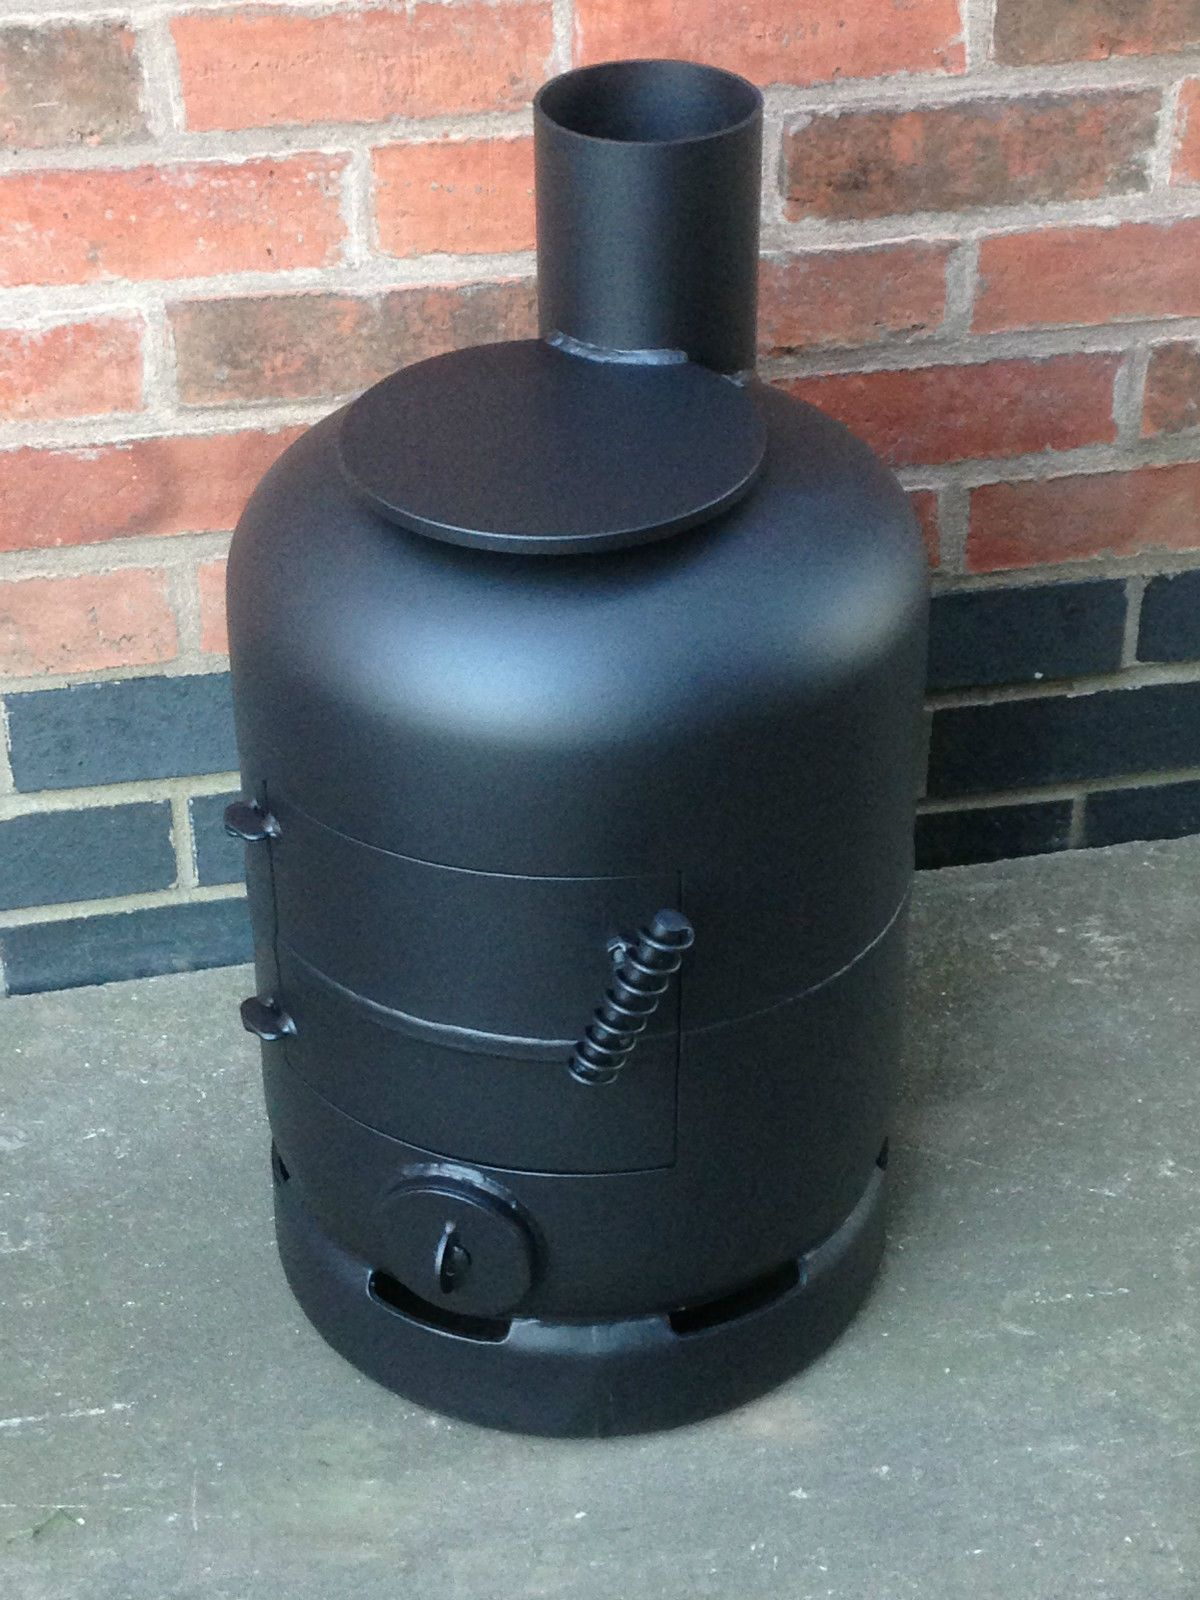 r sultat de recherche d 39 images pour gas bottle rocket stove selber bauen pinterest ofen. Black Bedroom Furniture Sets. Home Design Ideas